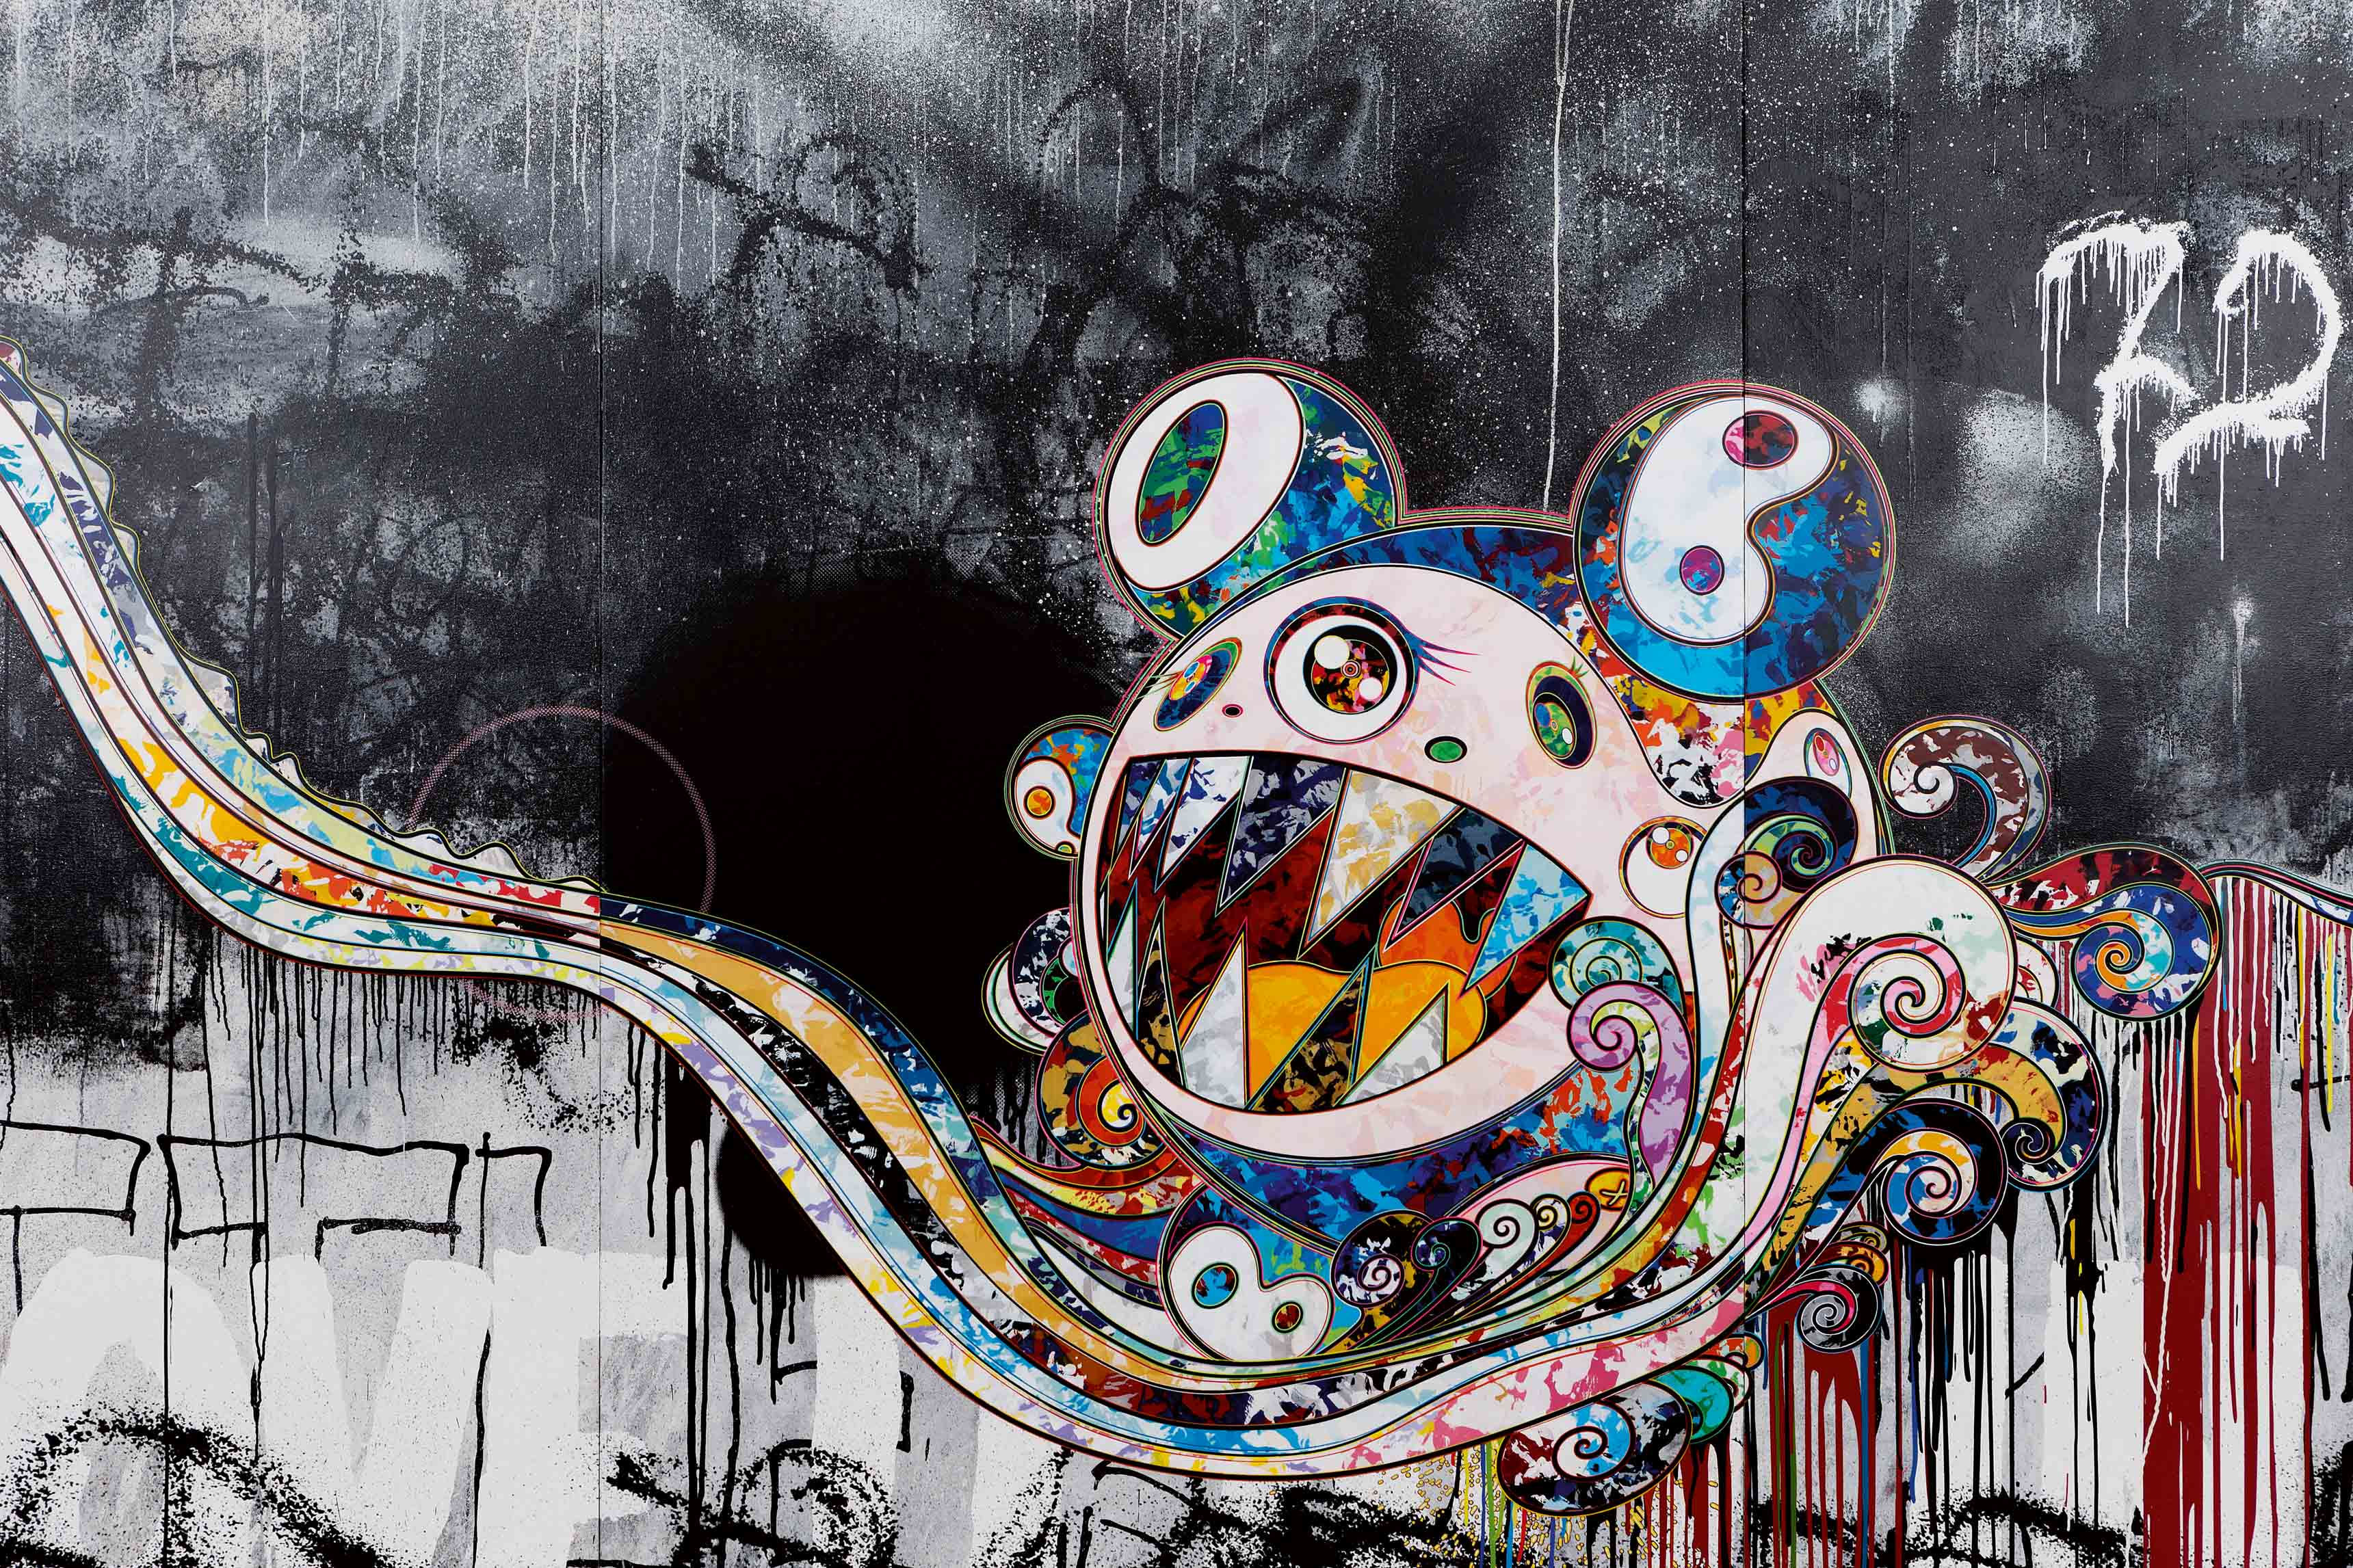 Takashi Murakami, Fondation Louis Vuitton, Paris.